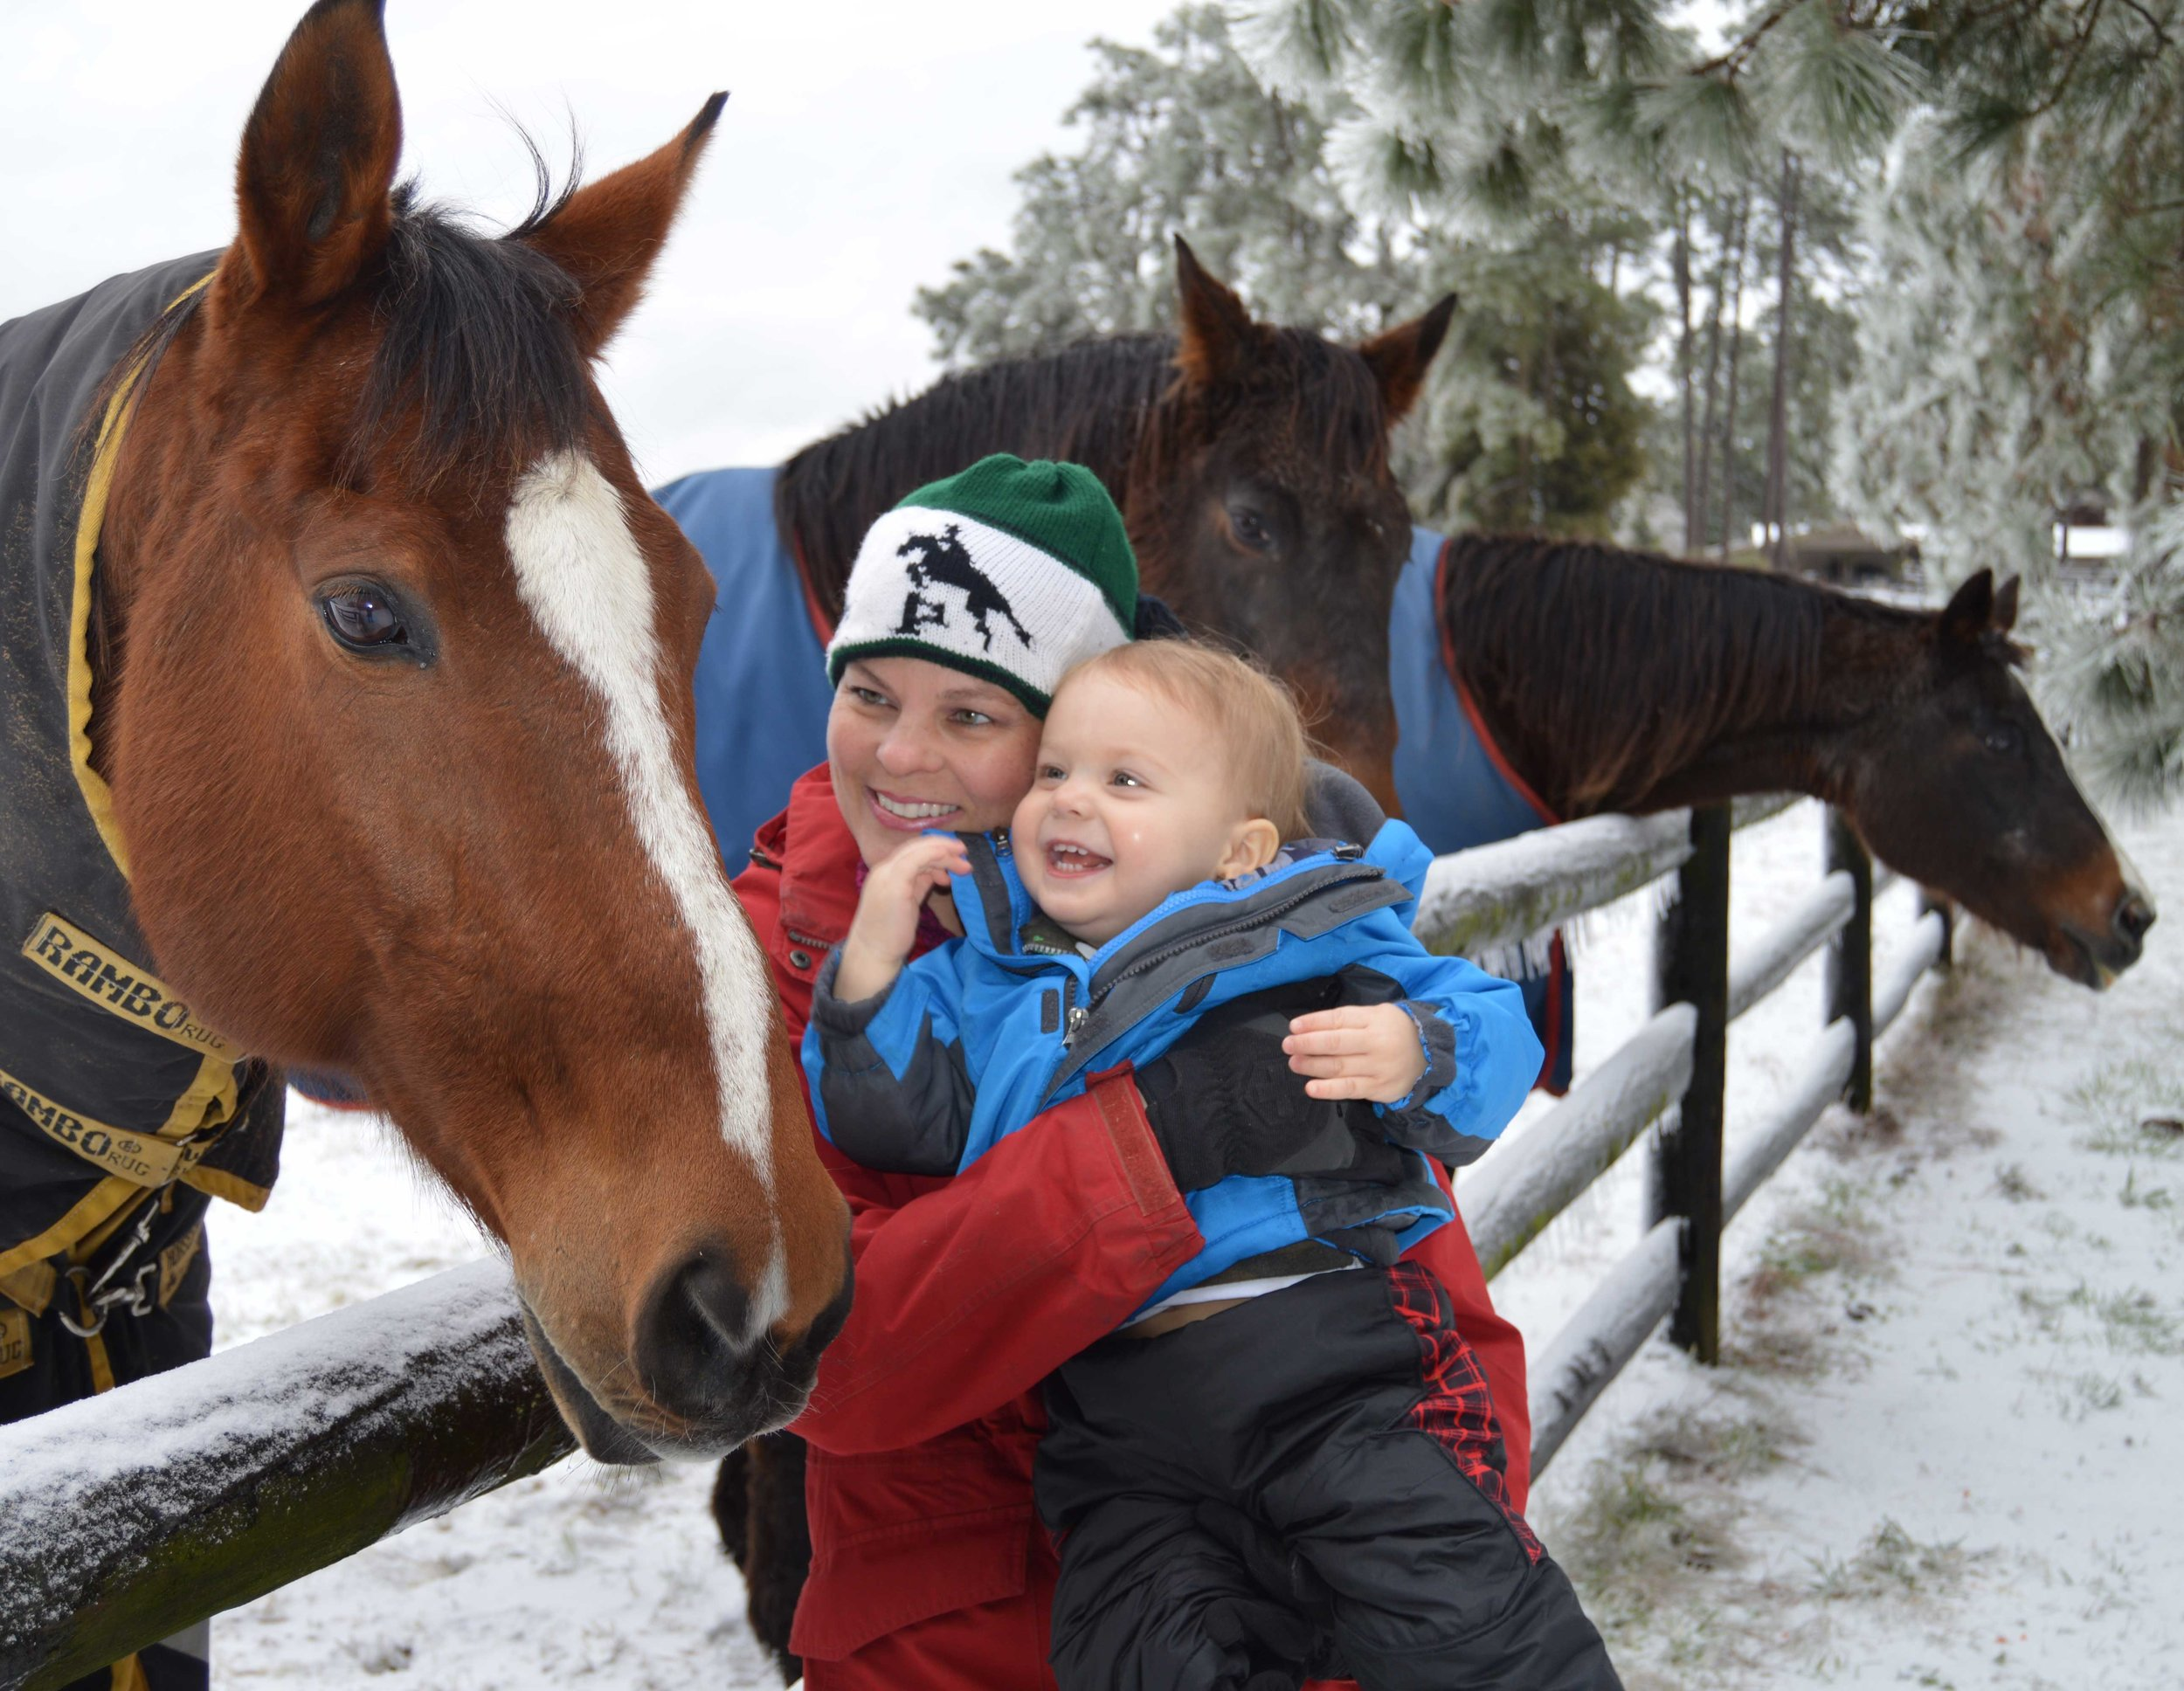 Fay and Benjamin on visiting Tango on a snow day